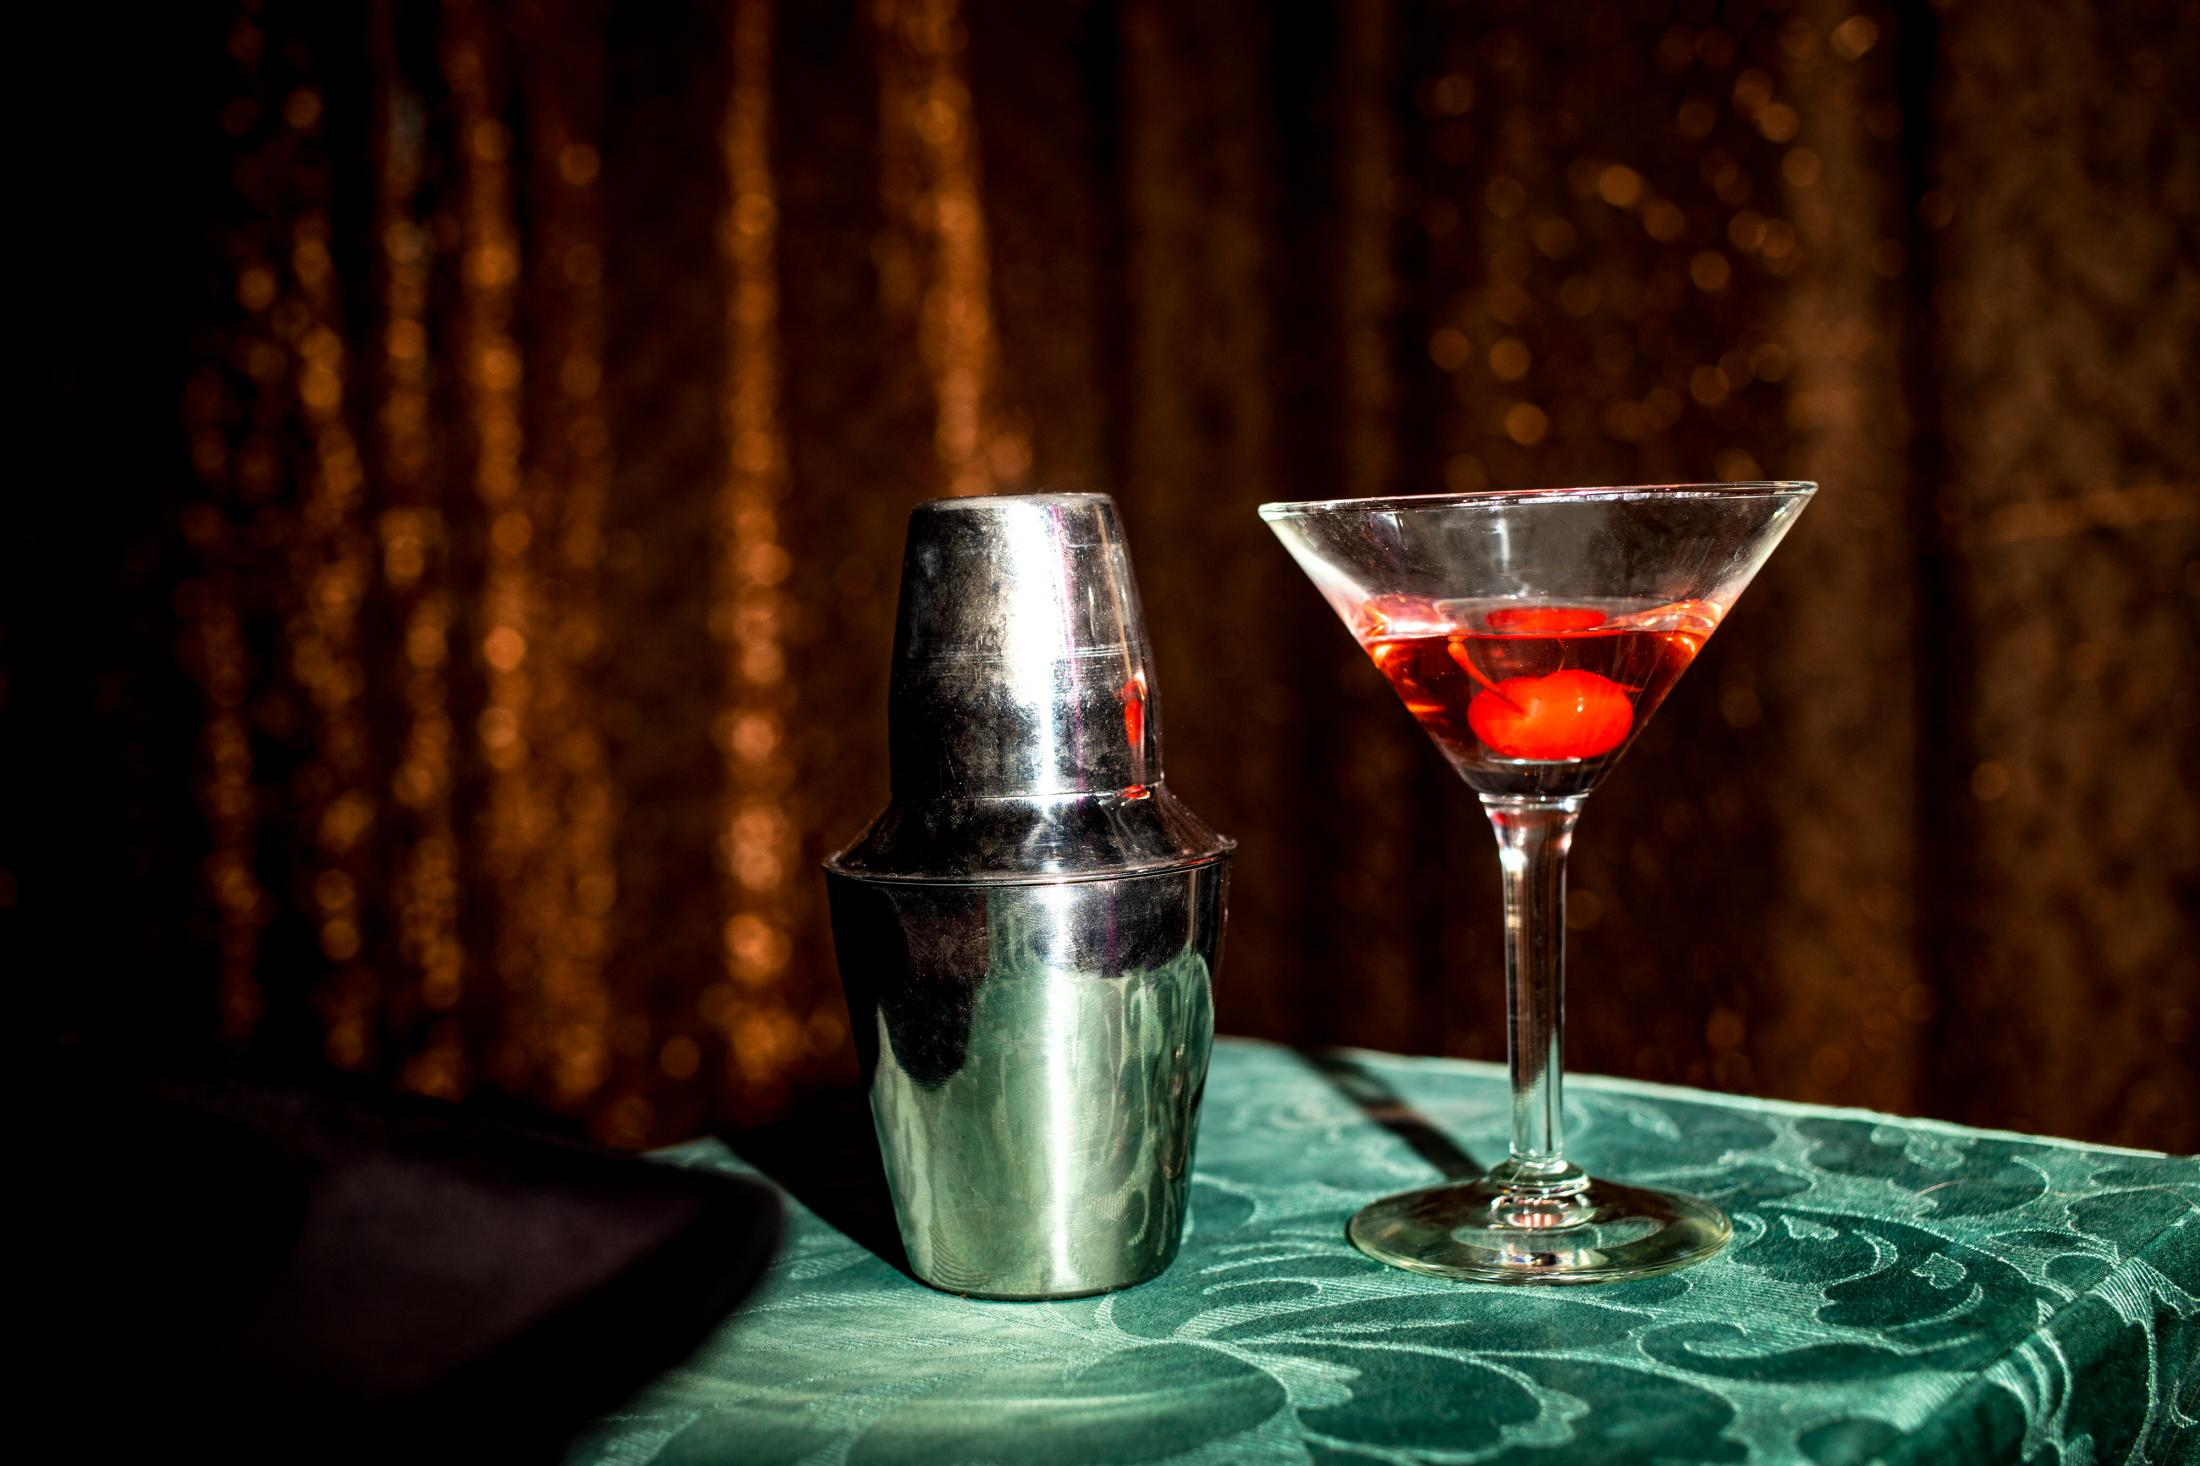 A cocktail shaker and a glass used as magic props by Carisa Hendrix, 32, aka Lucy Darling, during a show at the Magic Castle Cabaret in Santa Barbara, California.